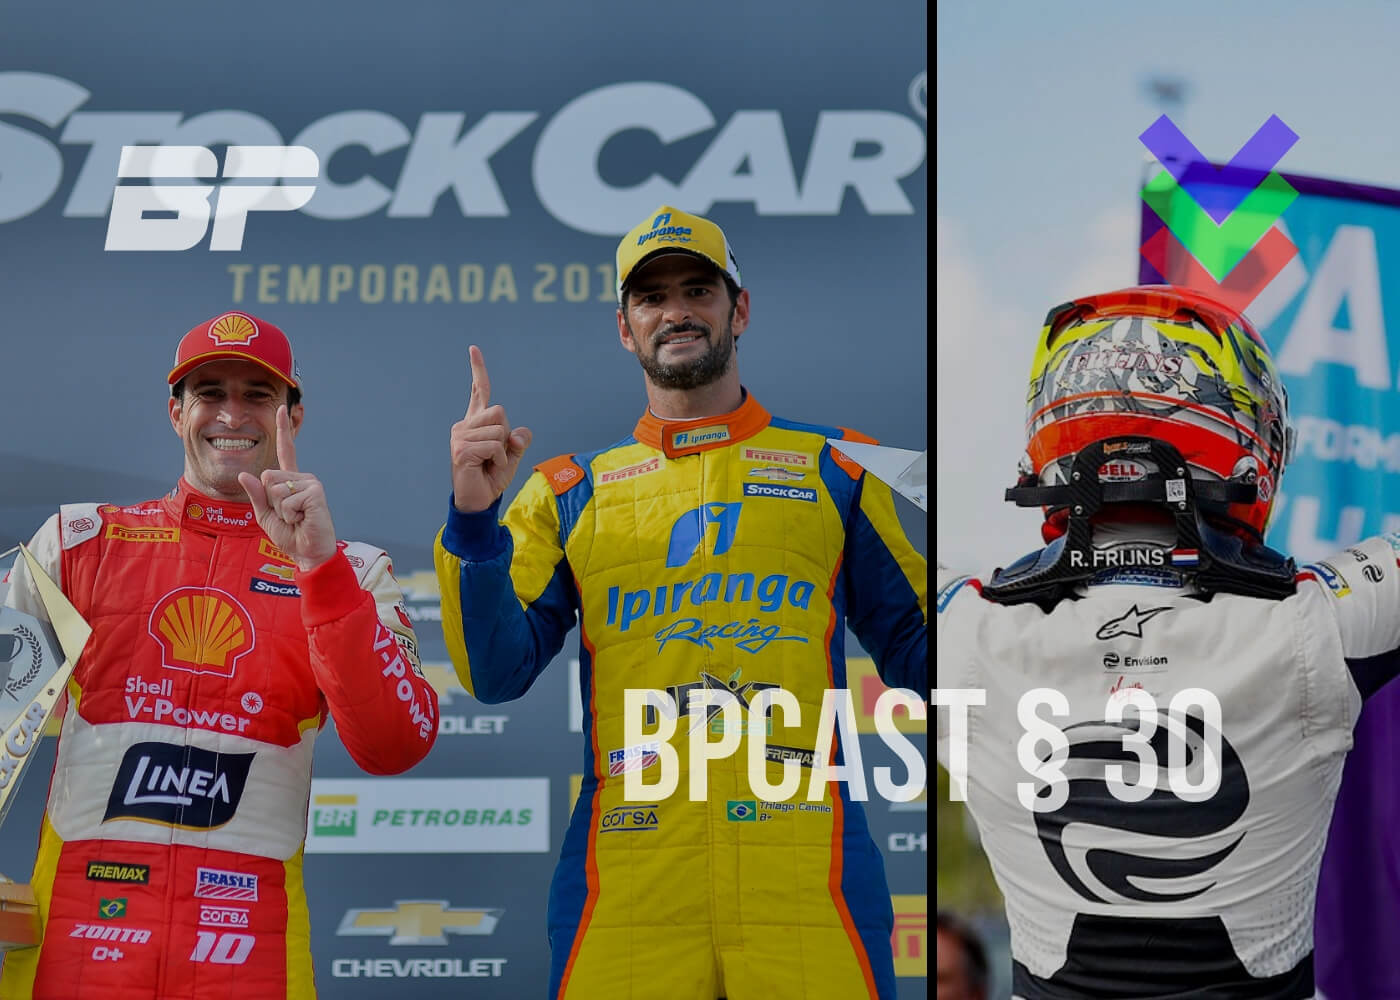 Foto de BPCast § 30 | Review do e-Prix de Paris e da etapa do Velo Città da Stock Car